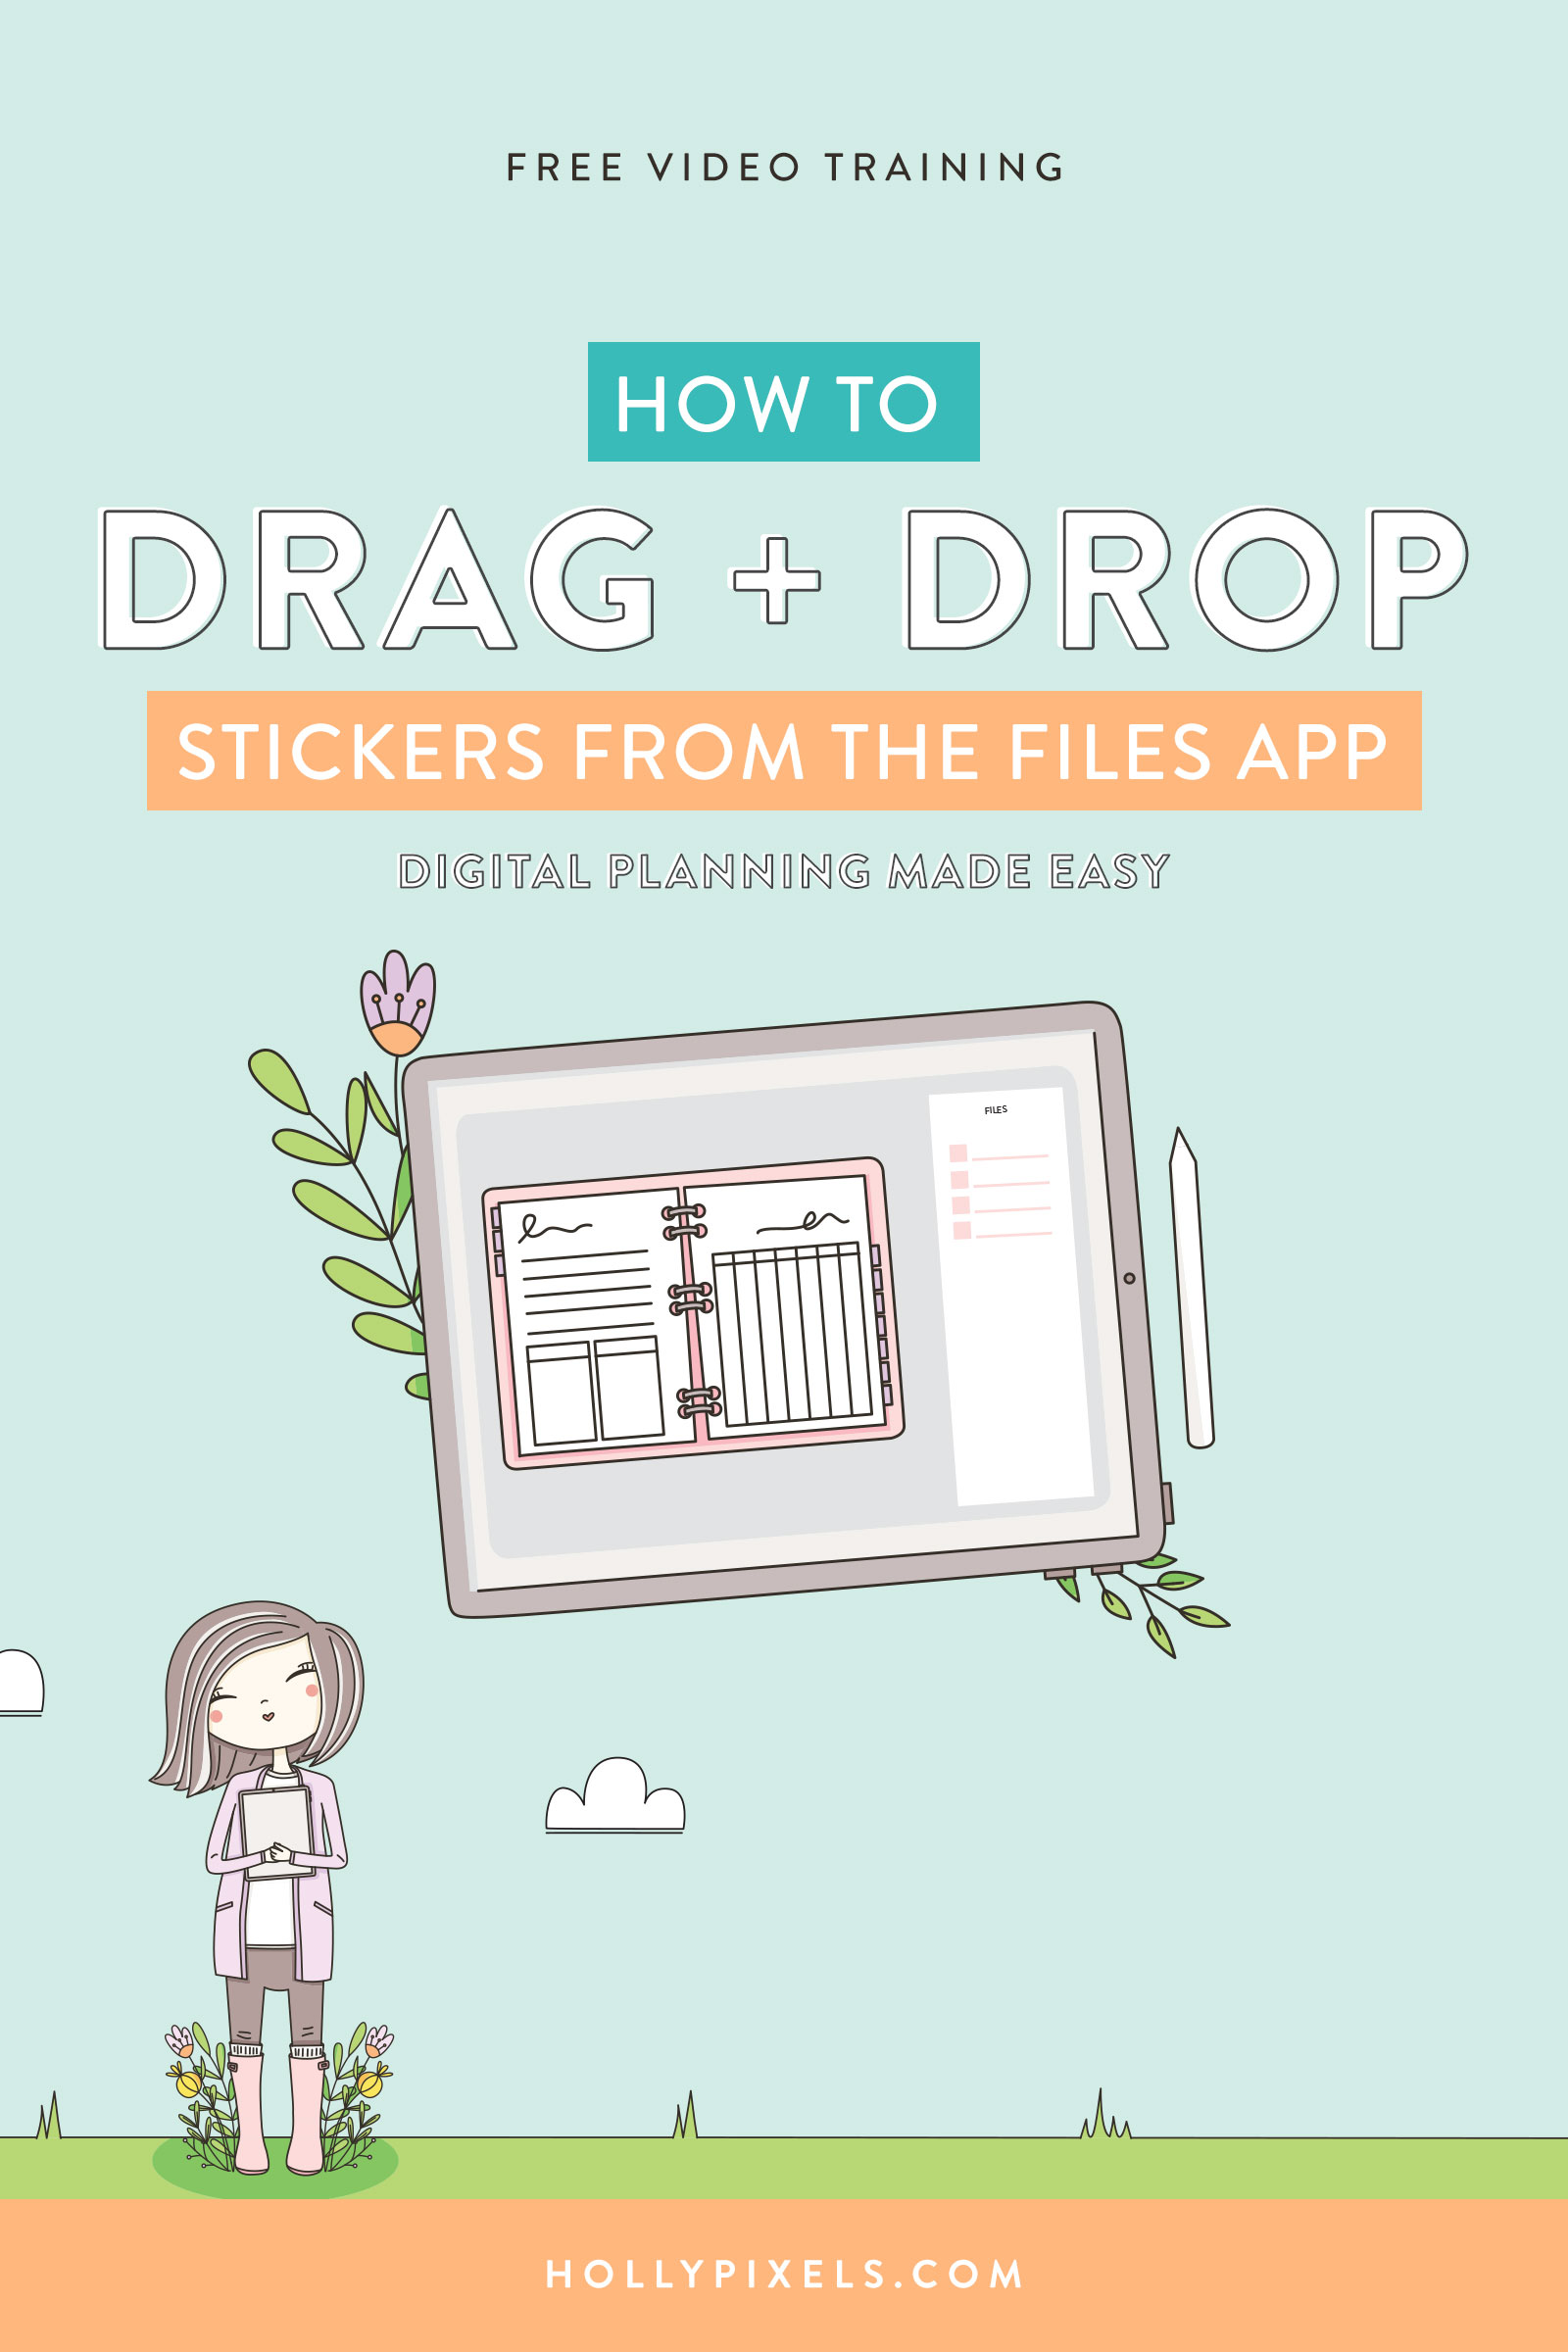 Sometimes you want a better visual for dragging stickers into your digital planner. This trick can speed up the process from having to go back and forth to a sticker book or a different tab.